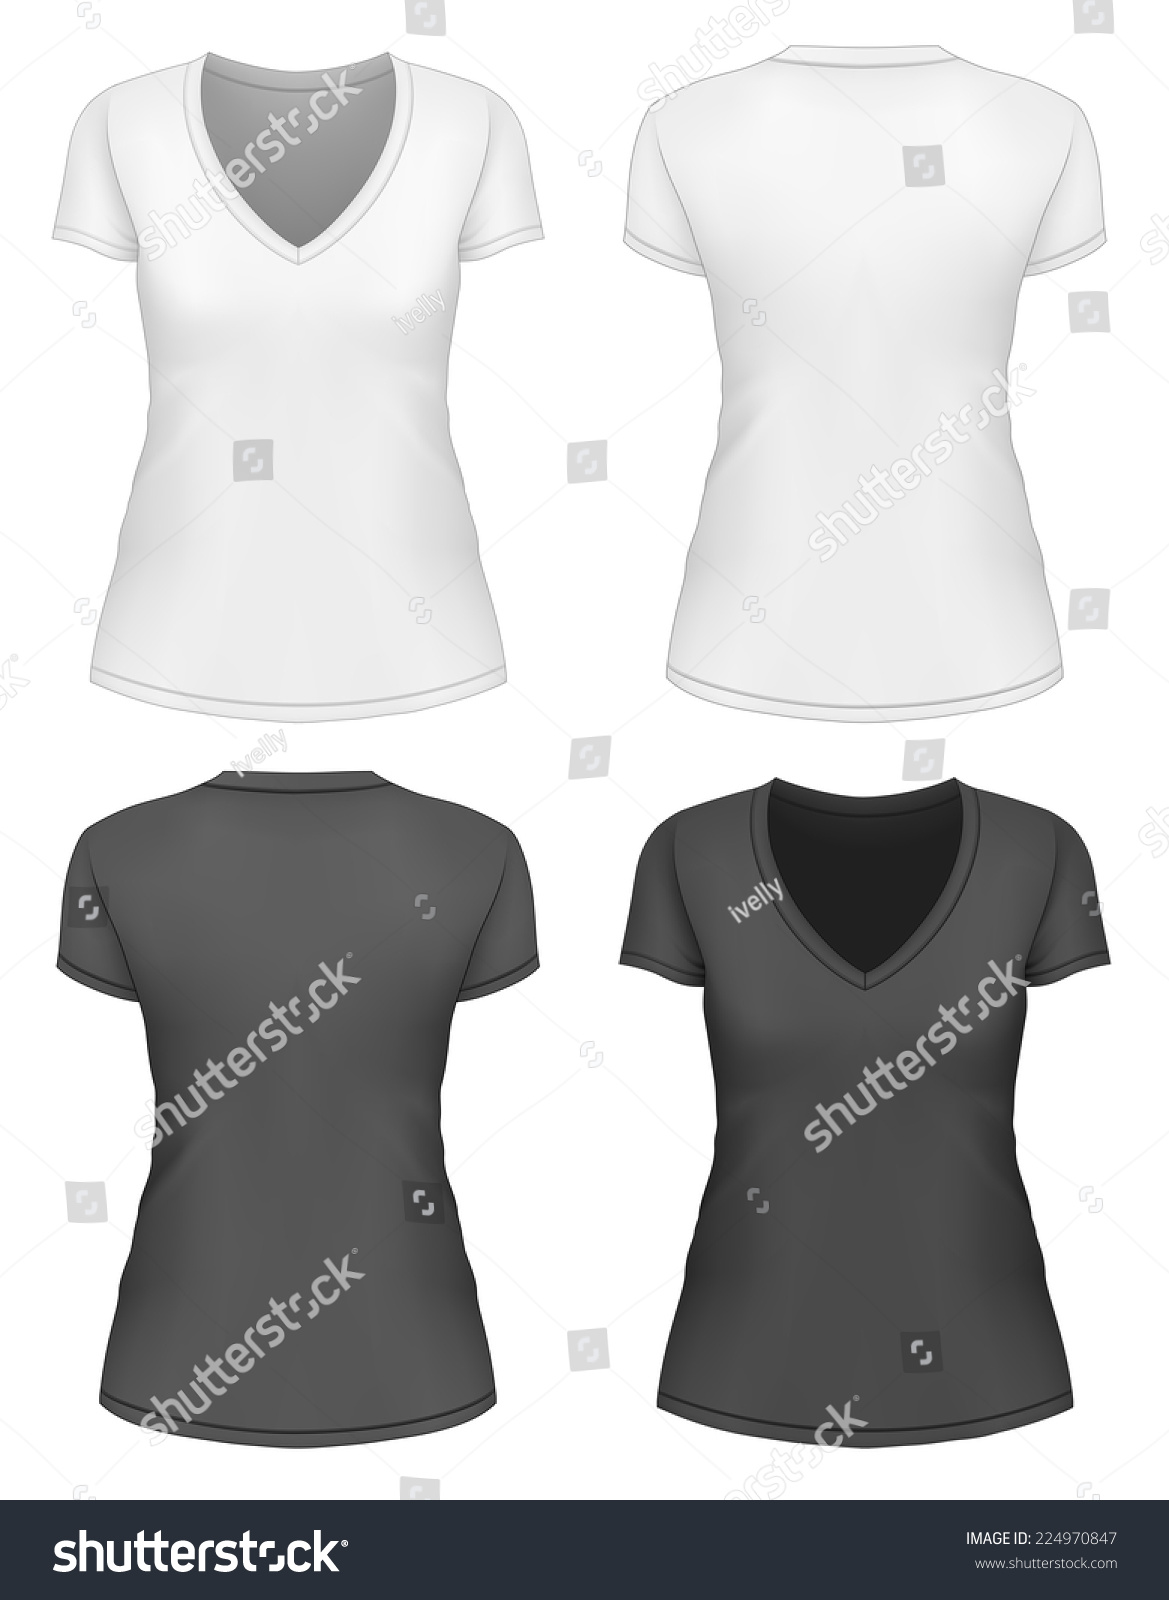 Womens vneck tshirt design template front stock vector for V neck t shirts with designs